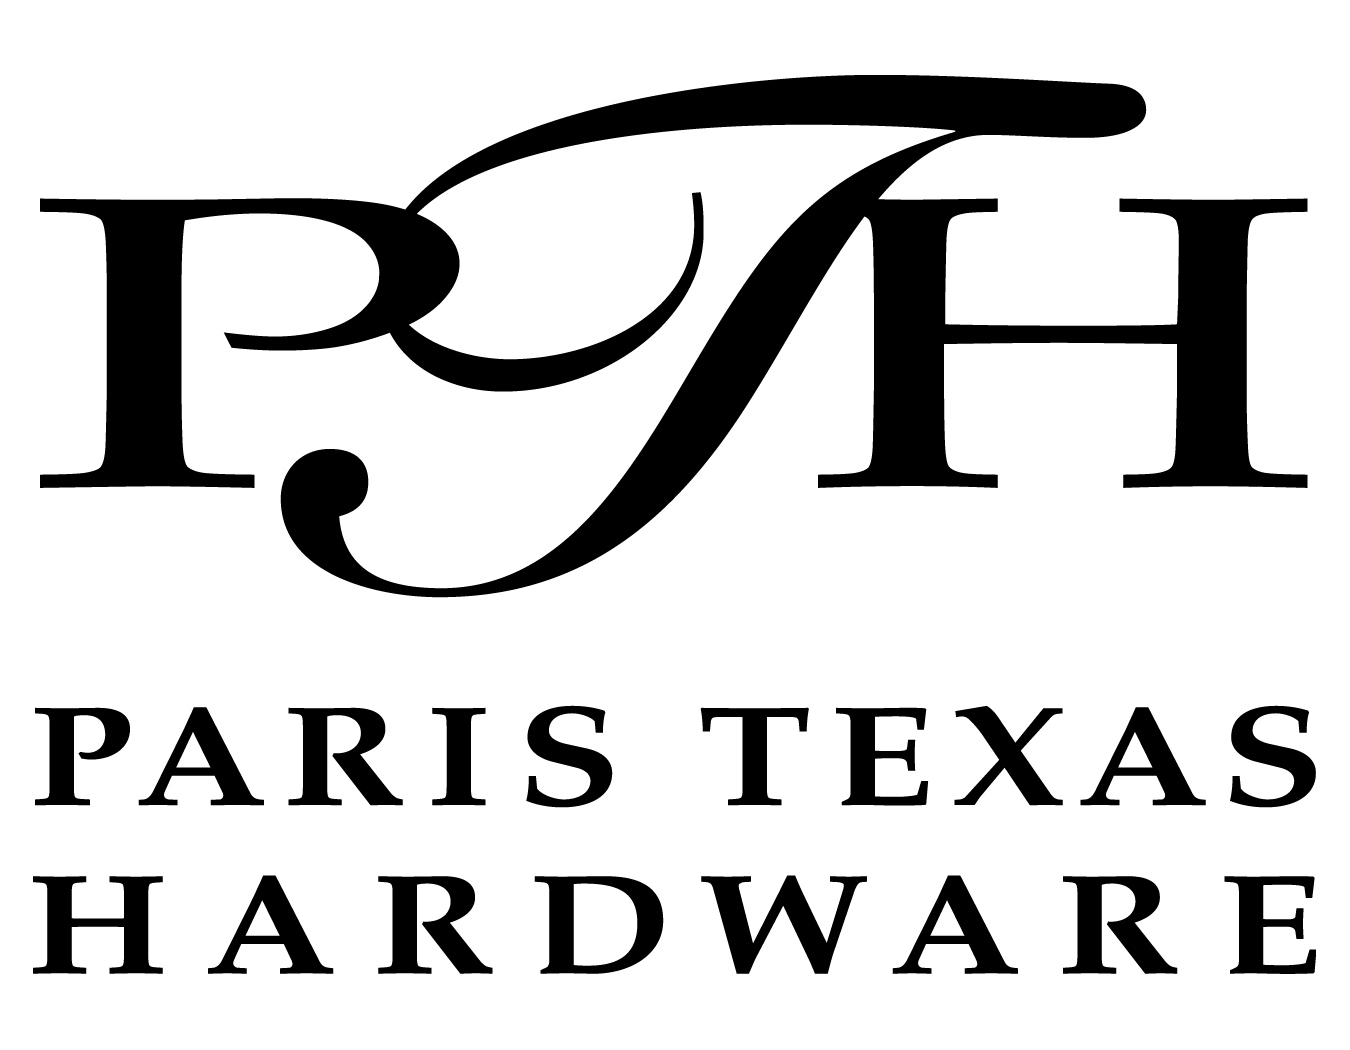 Paris Texas Hardware